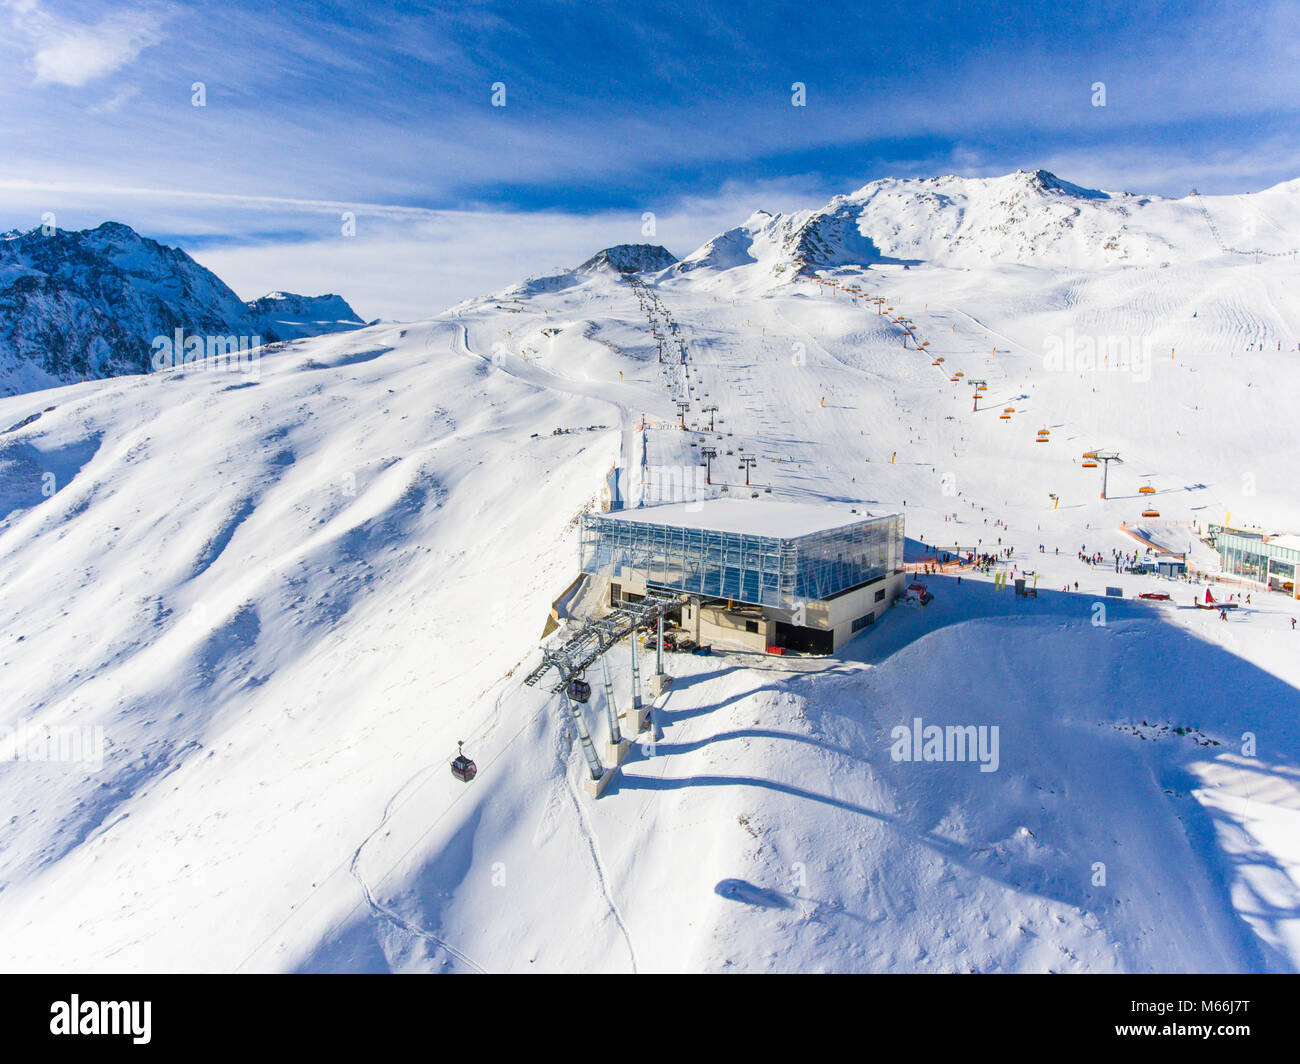 Ski resort in the Alps with ski lift and people skiing on the slope. Aerial view - Stock Image